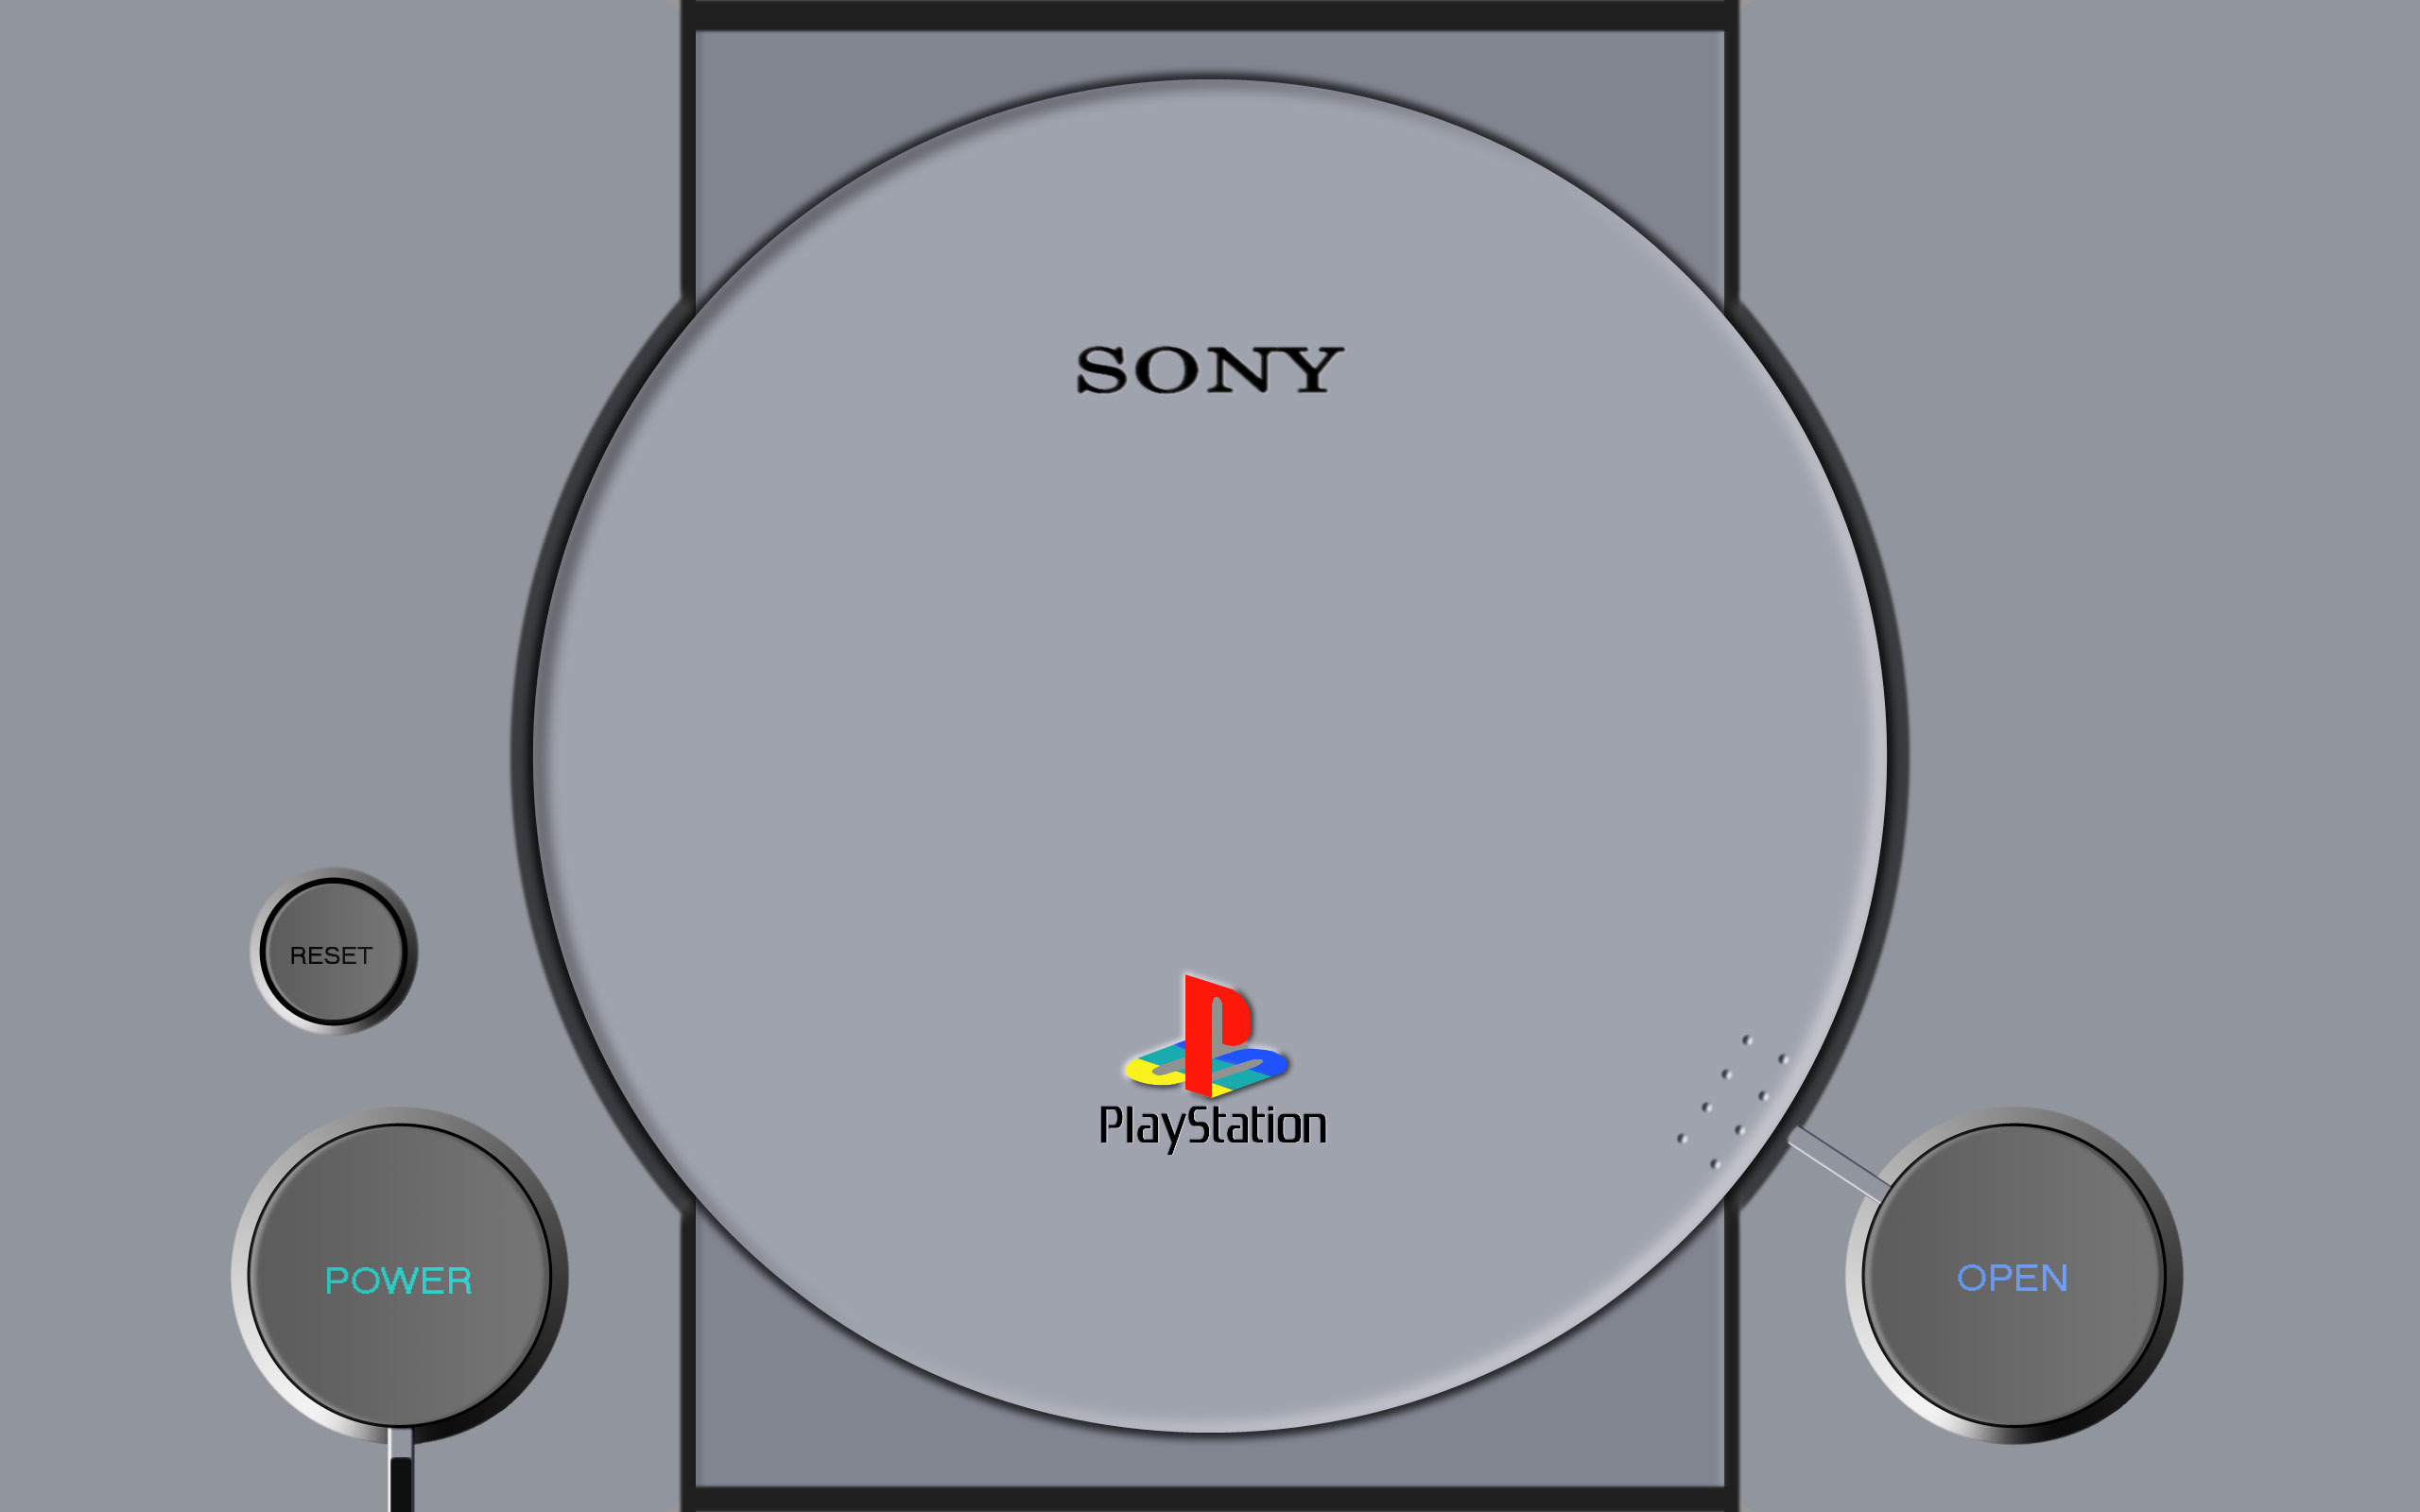 Sony PlayStation Wallpaper 2560x1600